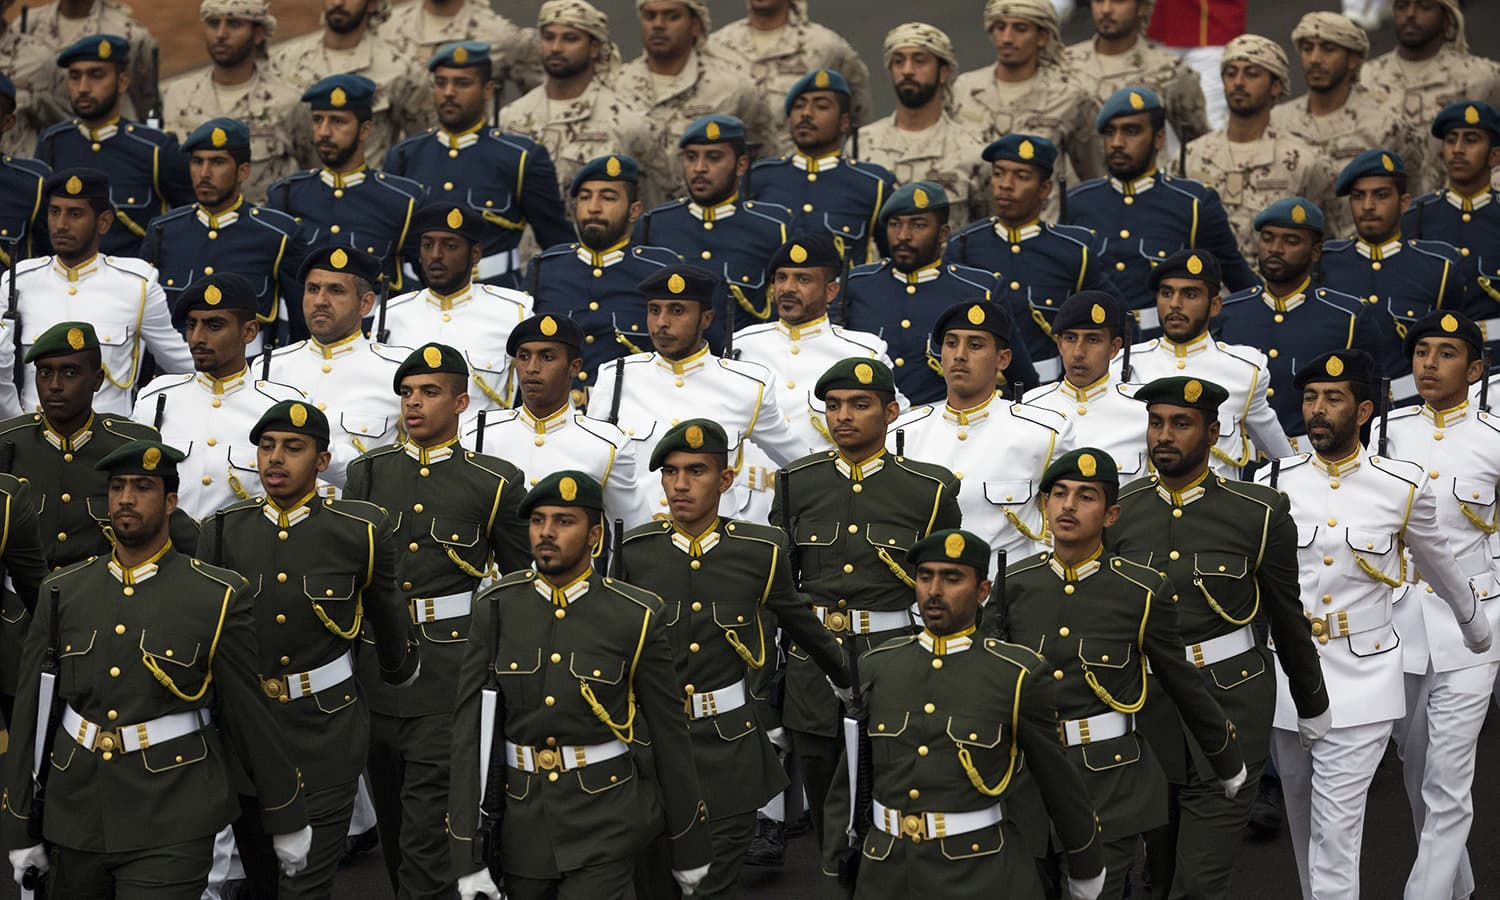 A contingent from UAE marches during Republic Day parade in New Delhi.— AP